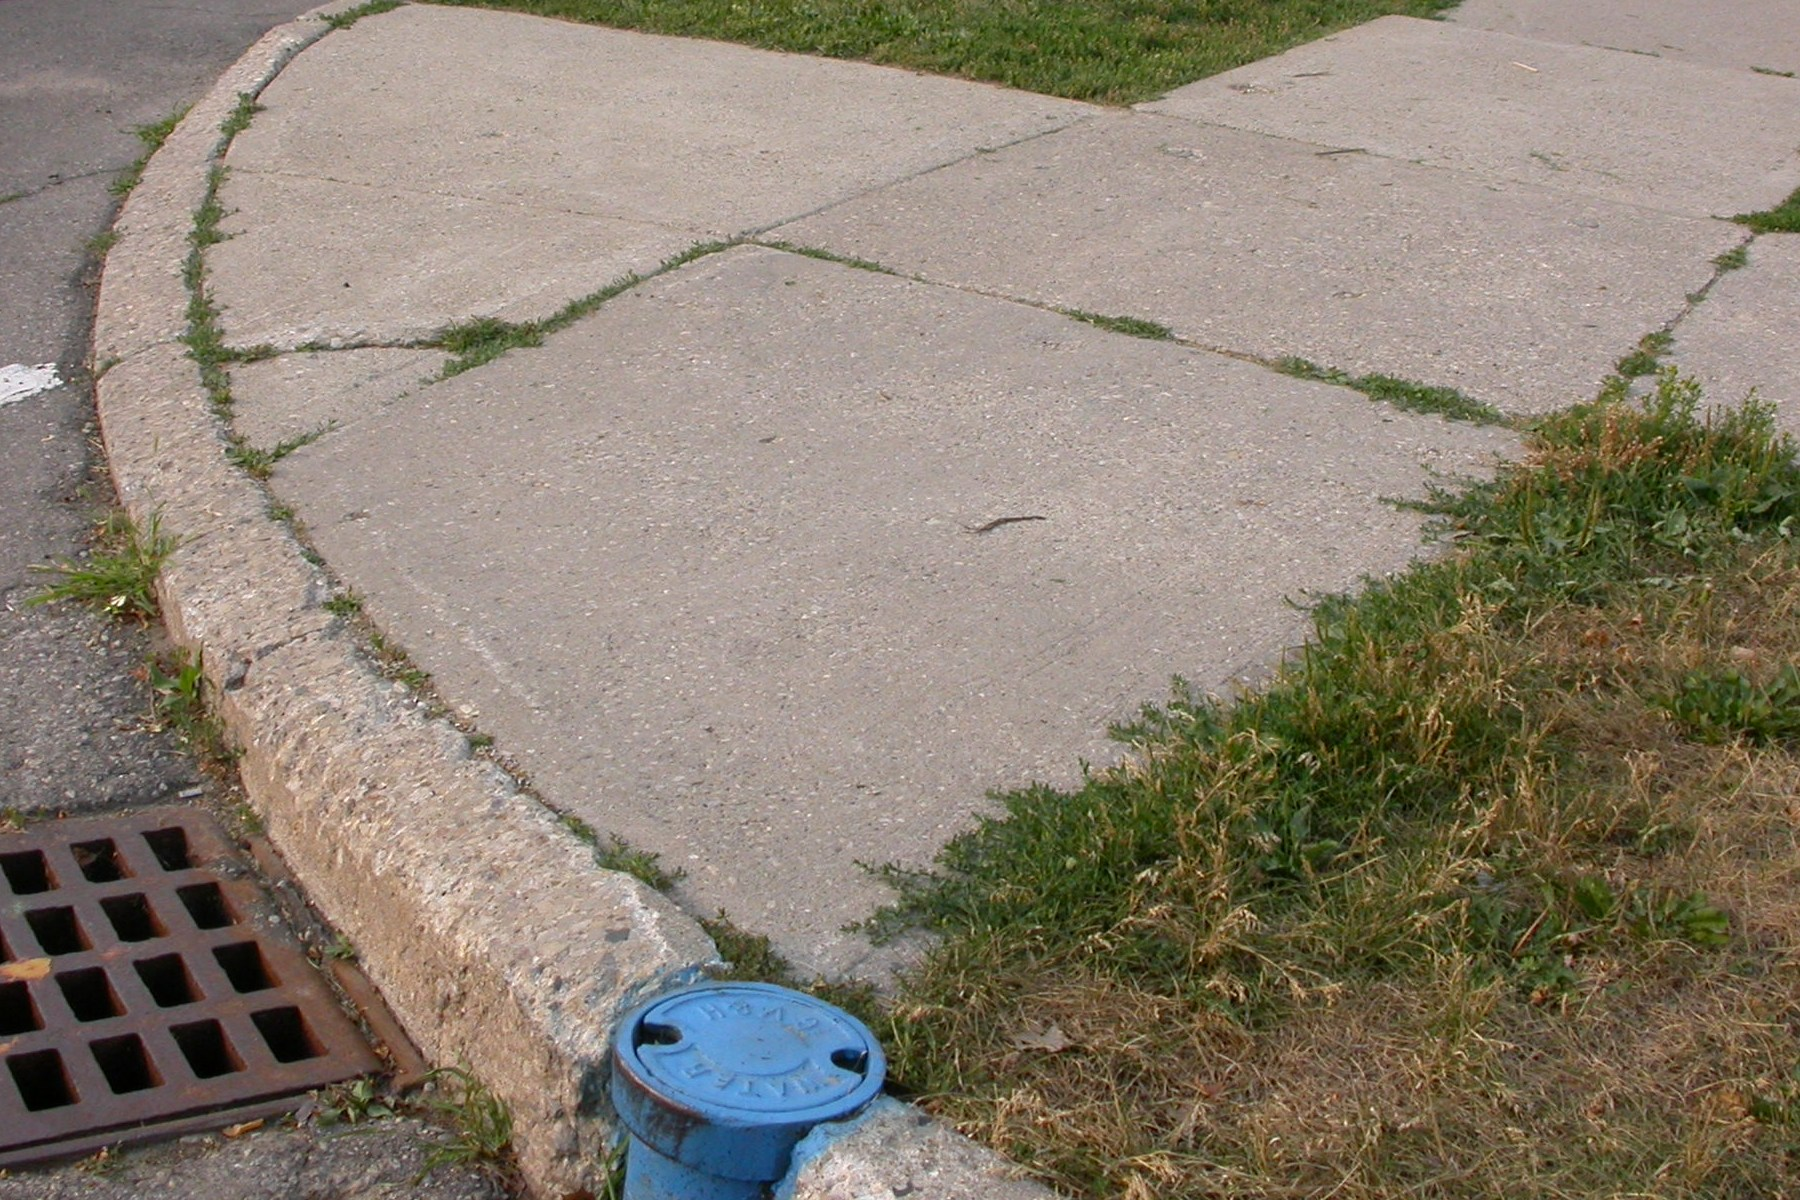 Curb cut - Wikipedia